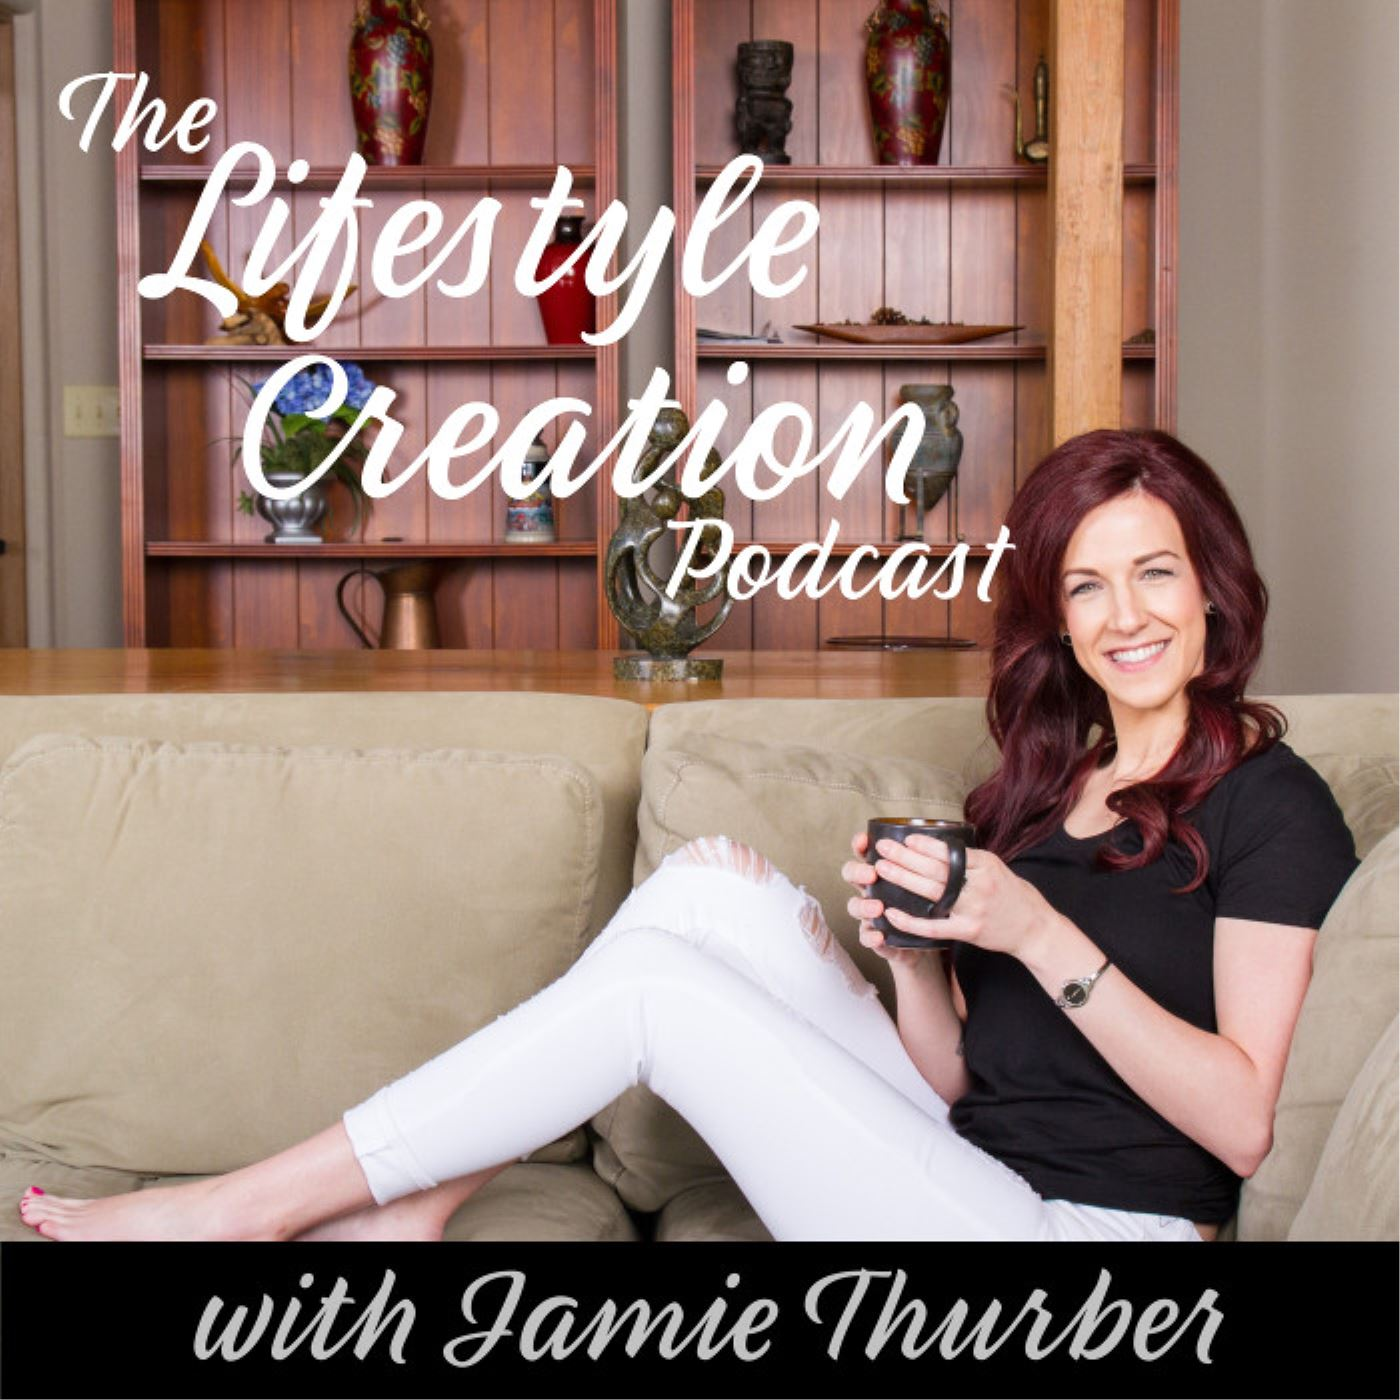 The Lifestyle Creation Podcast